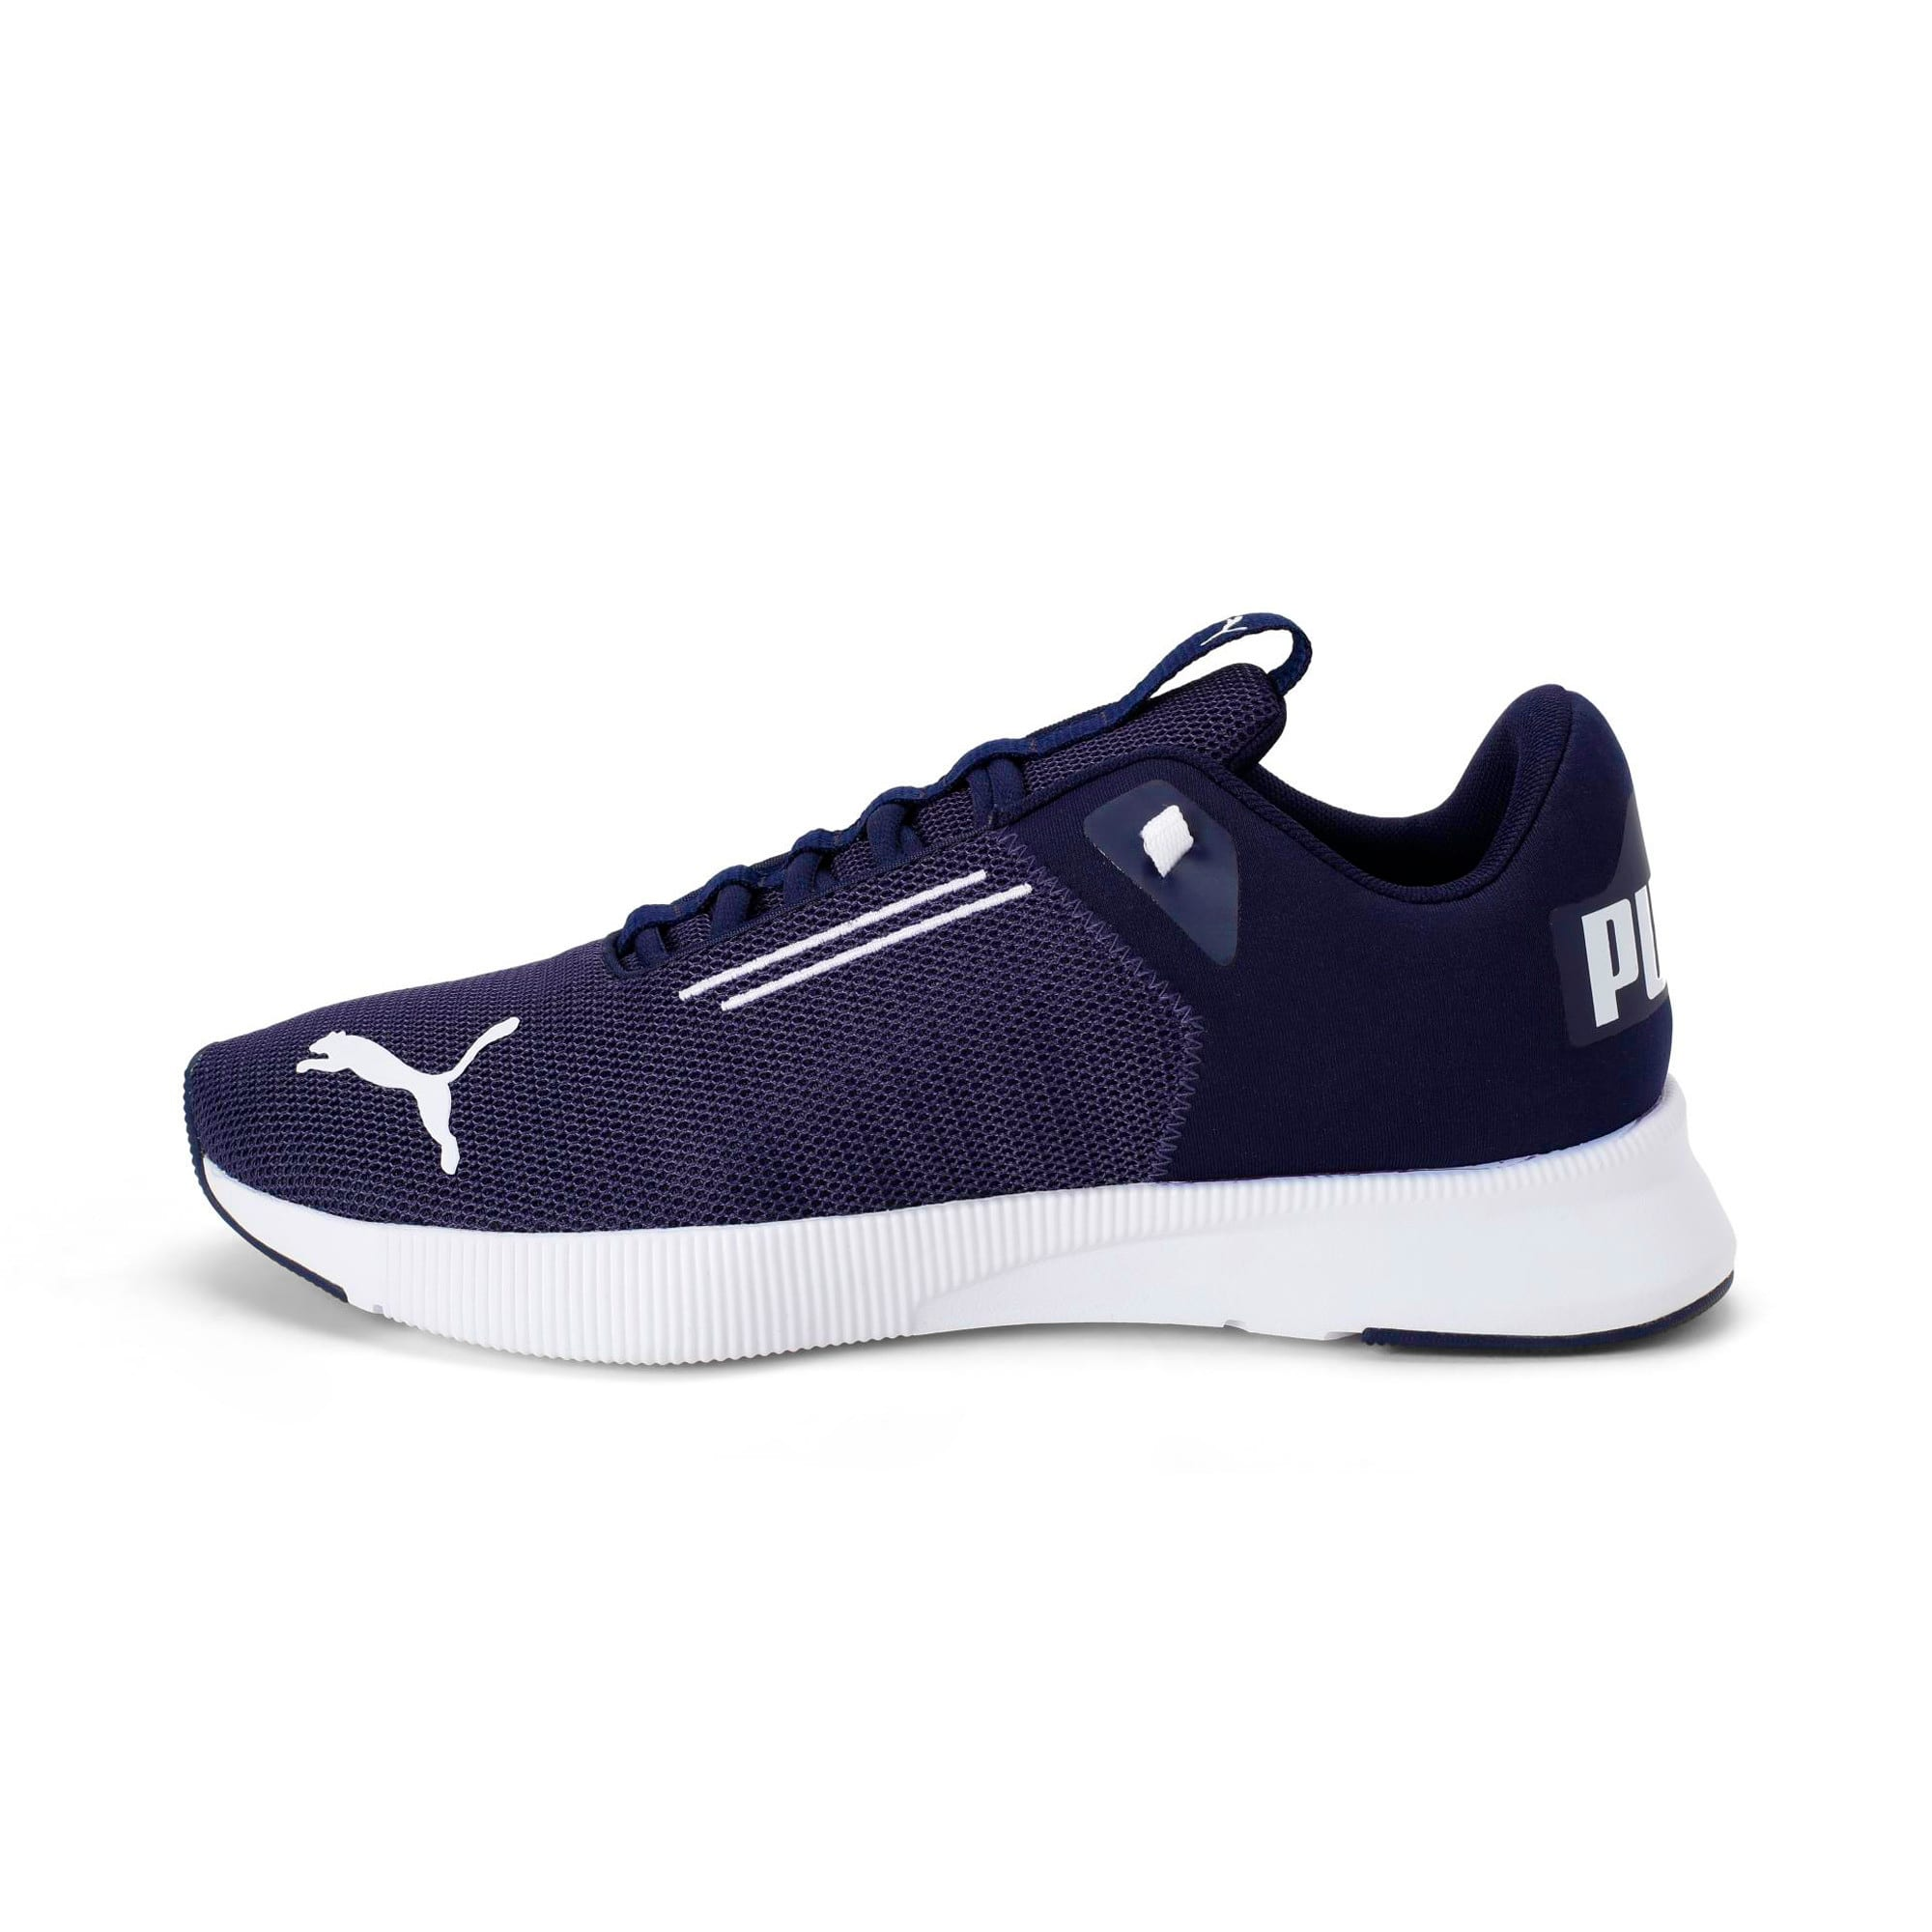 Thumbnail 1 of Flyer Modern Running Shoes, Peacoat-Puma White, medium-IND